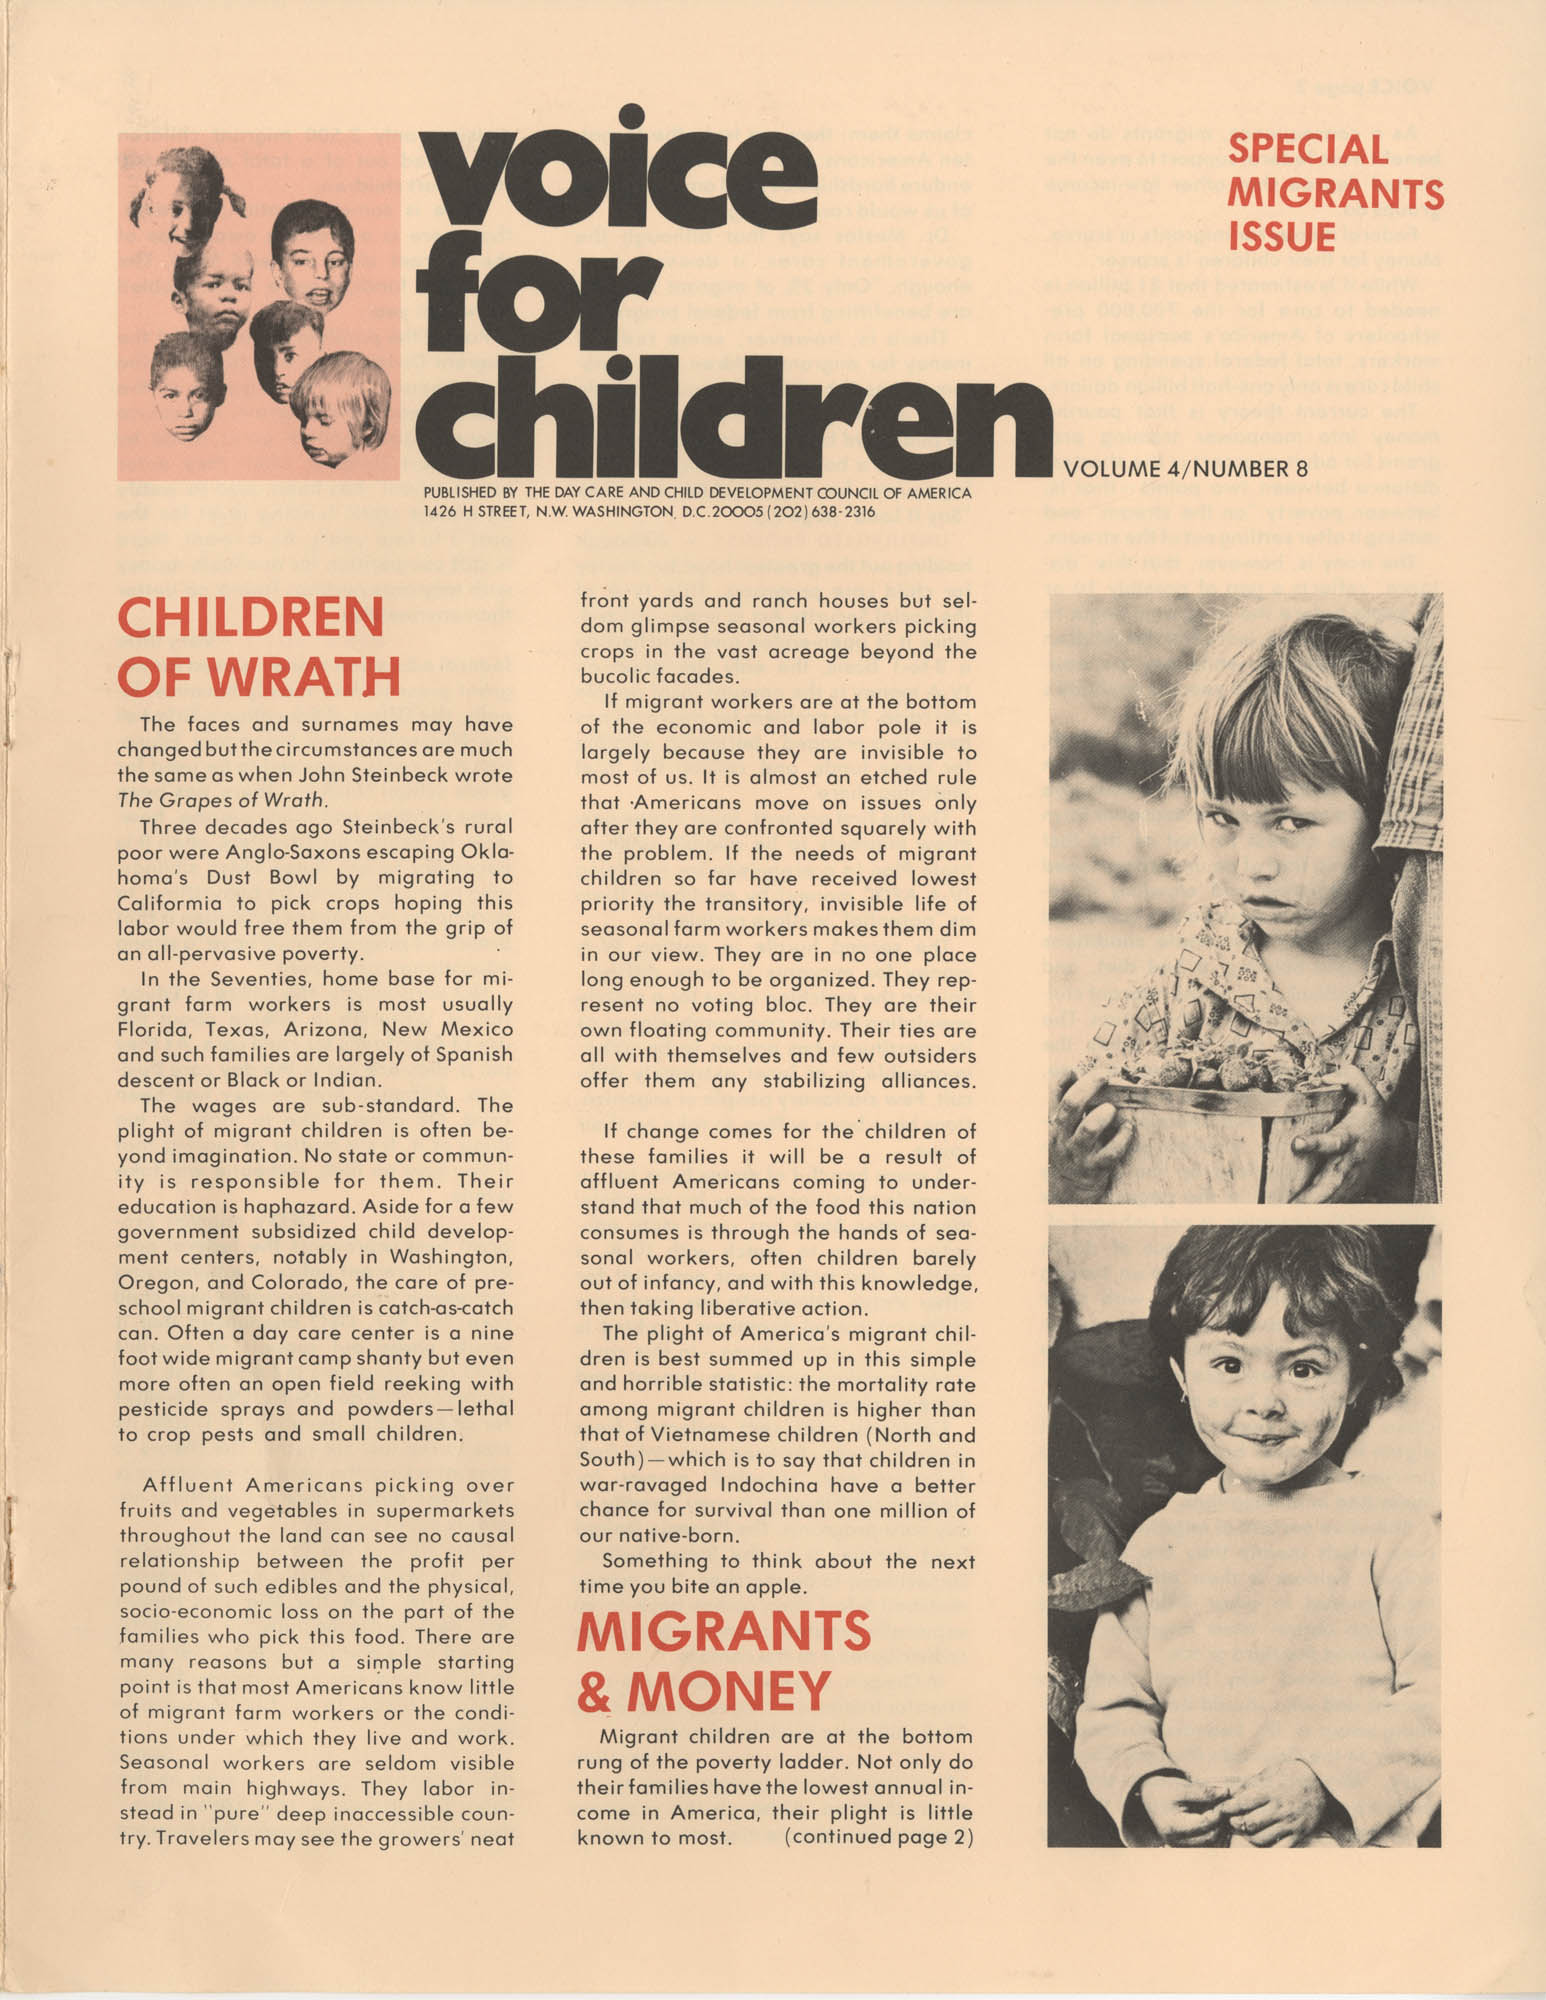 Voice For Children, Volume 4, Number 8, Cover